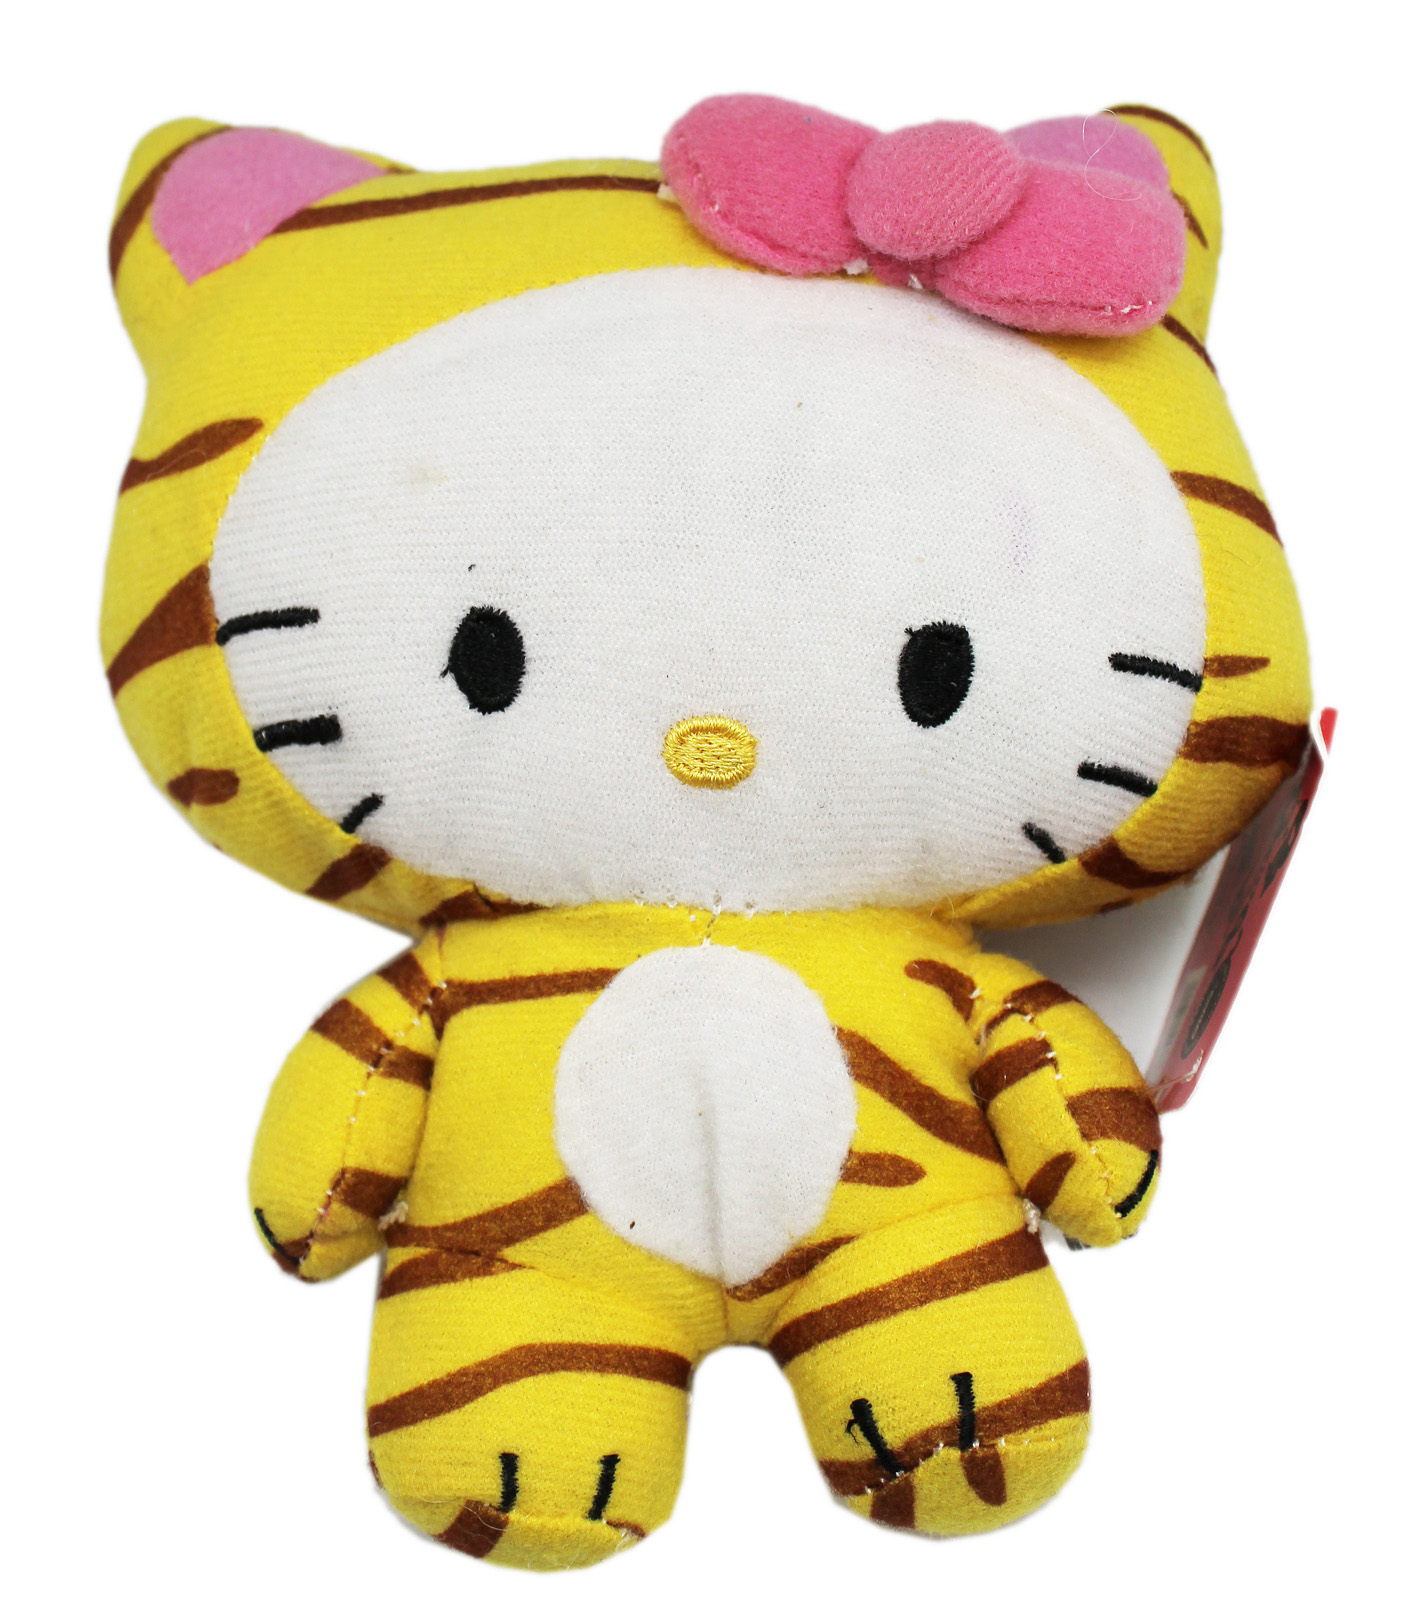 Hello Kitty In a Tiger Stripe Outfit Stuffed Plush Toy (6in) by